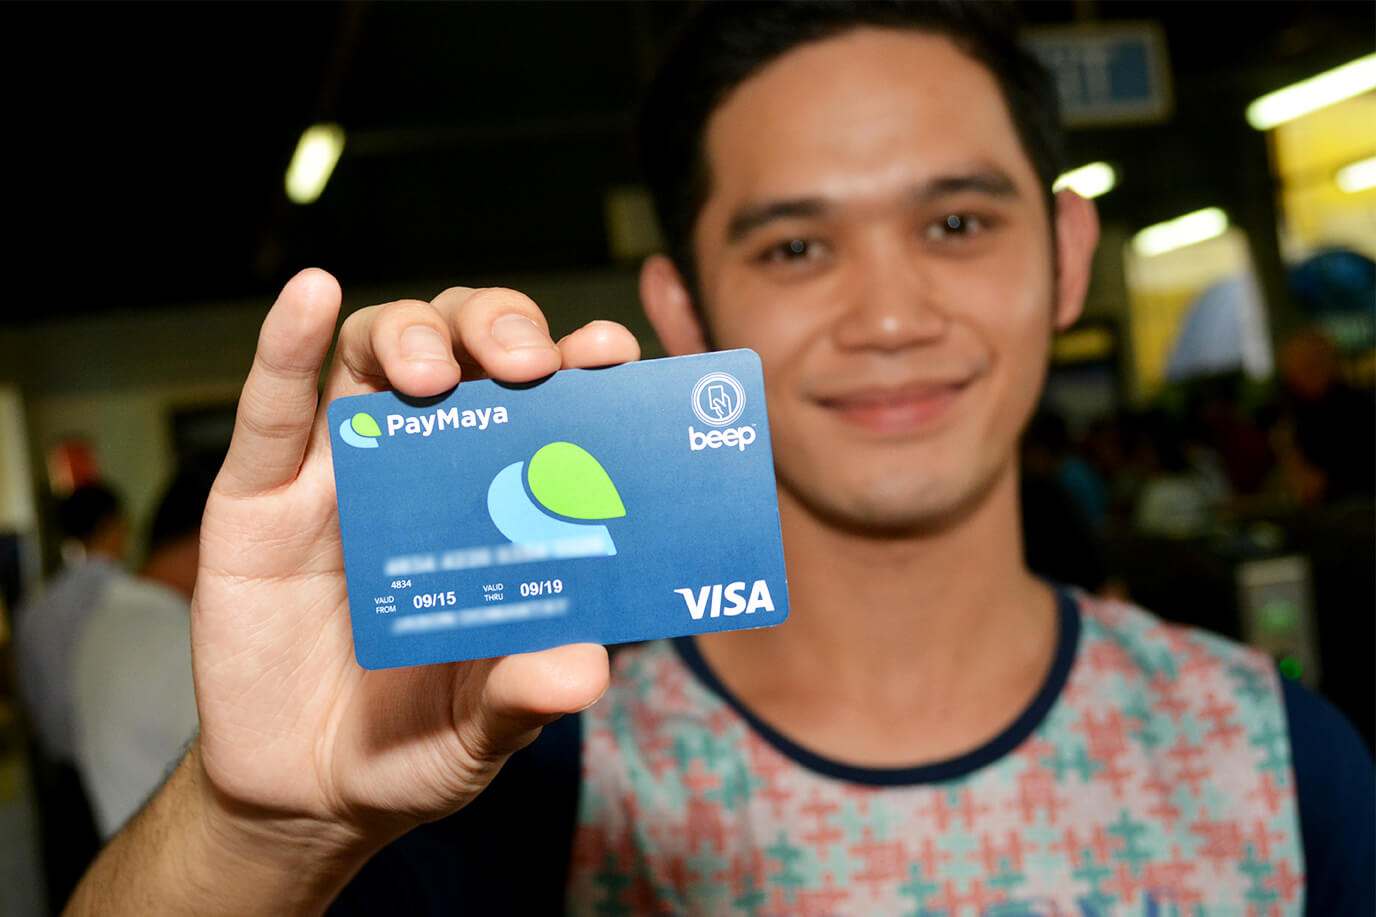 Smart Makes PayMaya with Beep Available at LRT and MRT